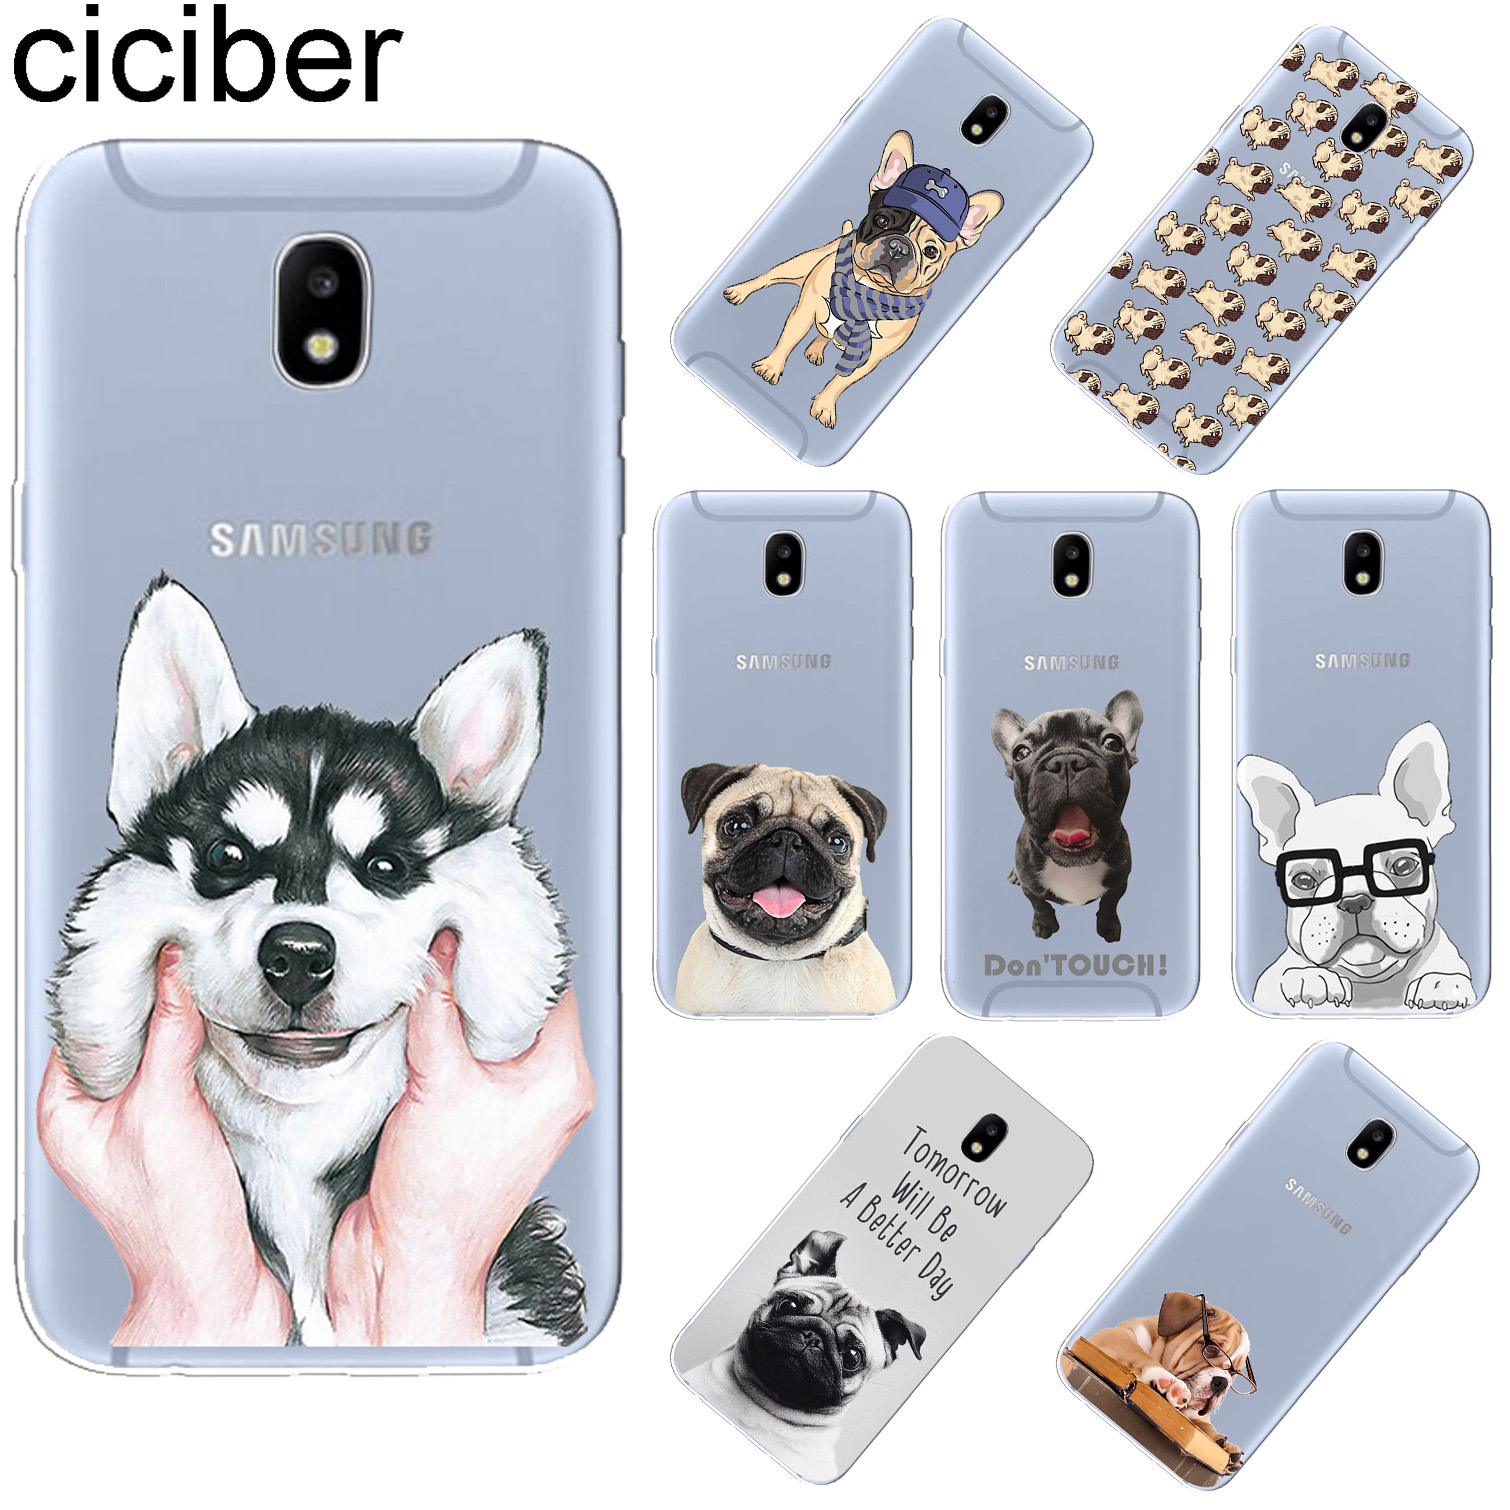 ciciber For Samsung Galaxy J 5 2 3 4 1 6 7 8 Pro Core Prime mini Plus 2016 2017 2018 Soft TPU Phone Case Cute Funny Pug Dog Capa in Fitted Cases from Cellphones Telecommunications